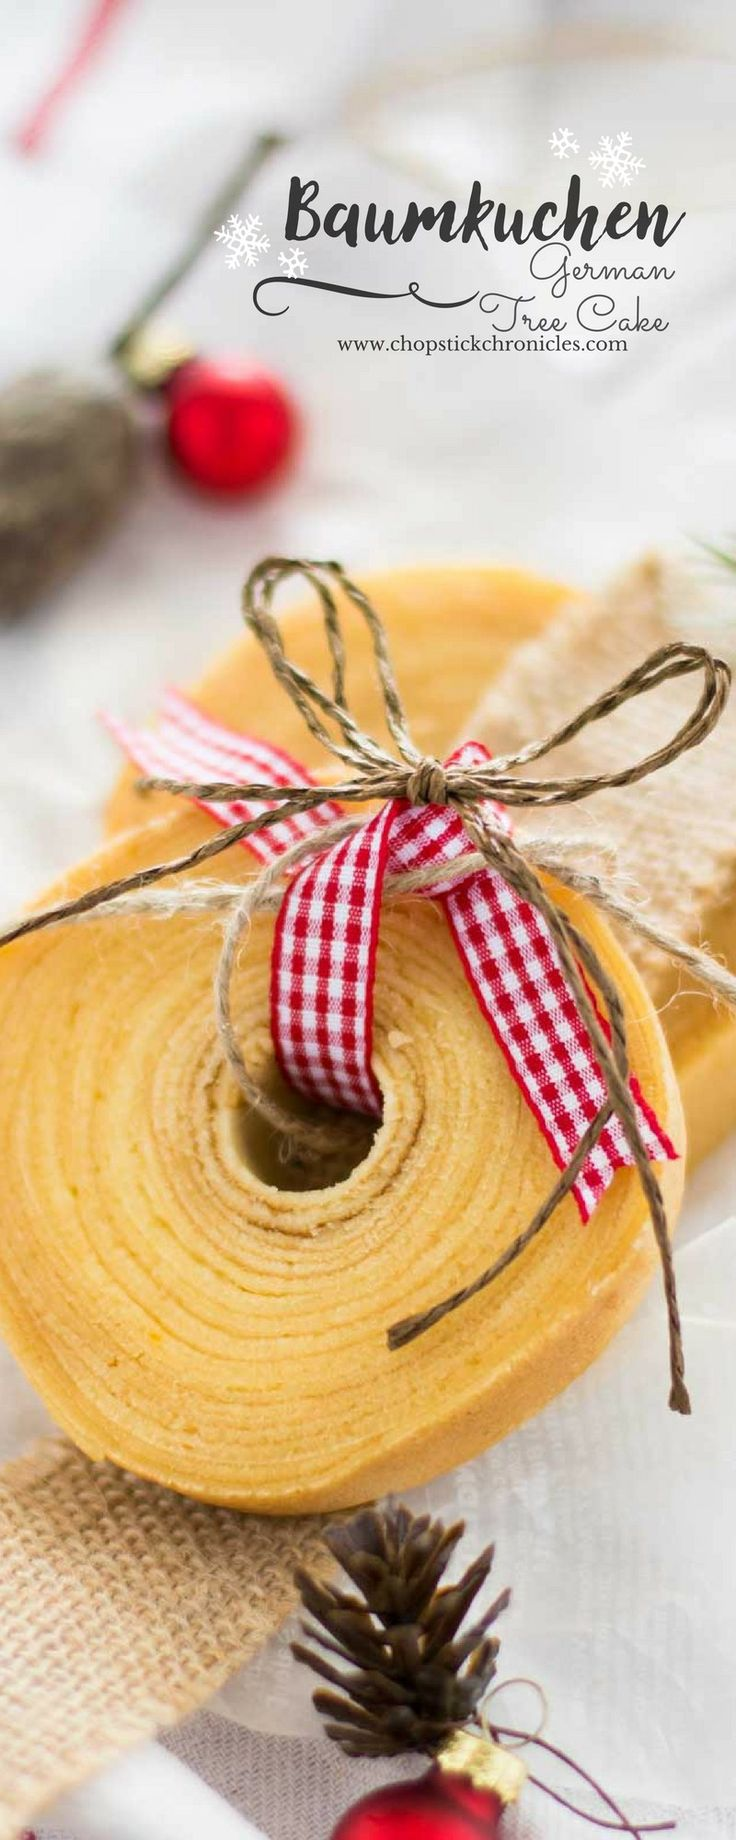 german-tree-cake-baumkuchen by Shihoko-San ... Alternative way to make this dessert without the traditional baking rods!